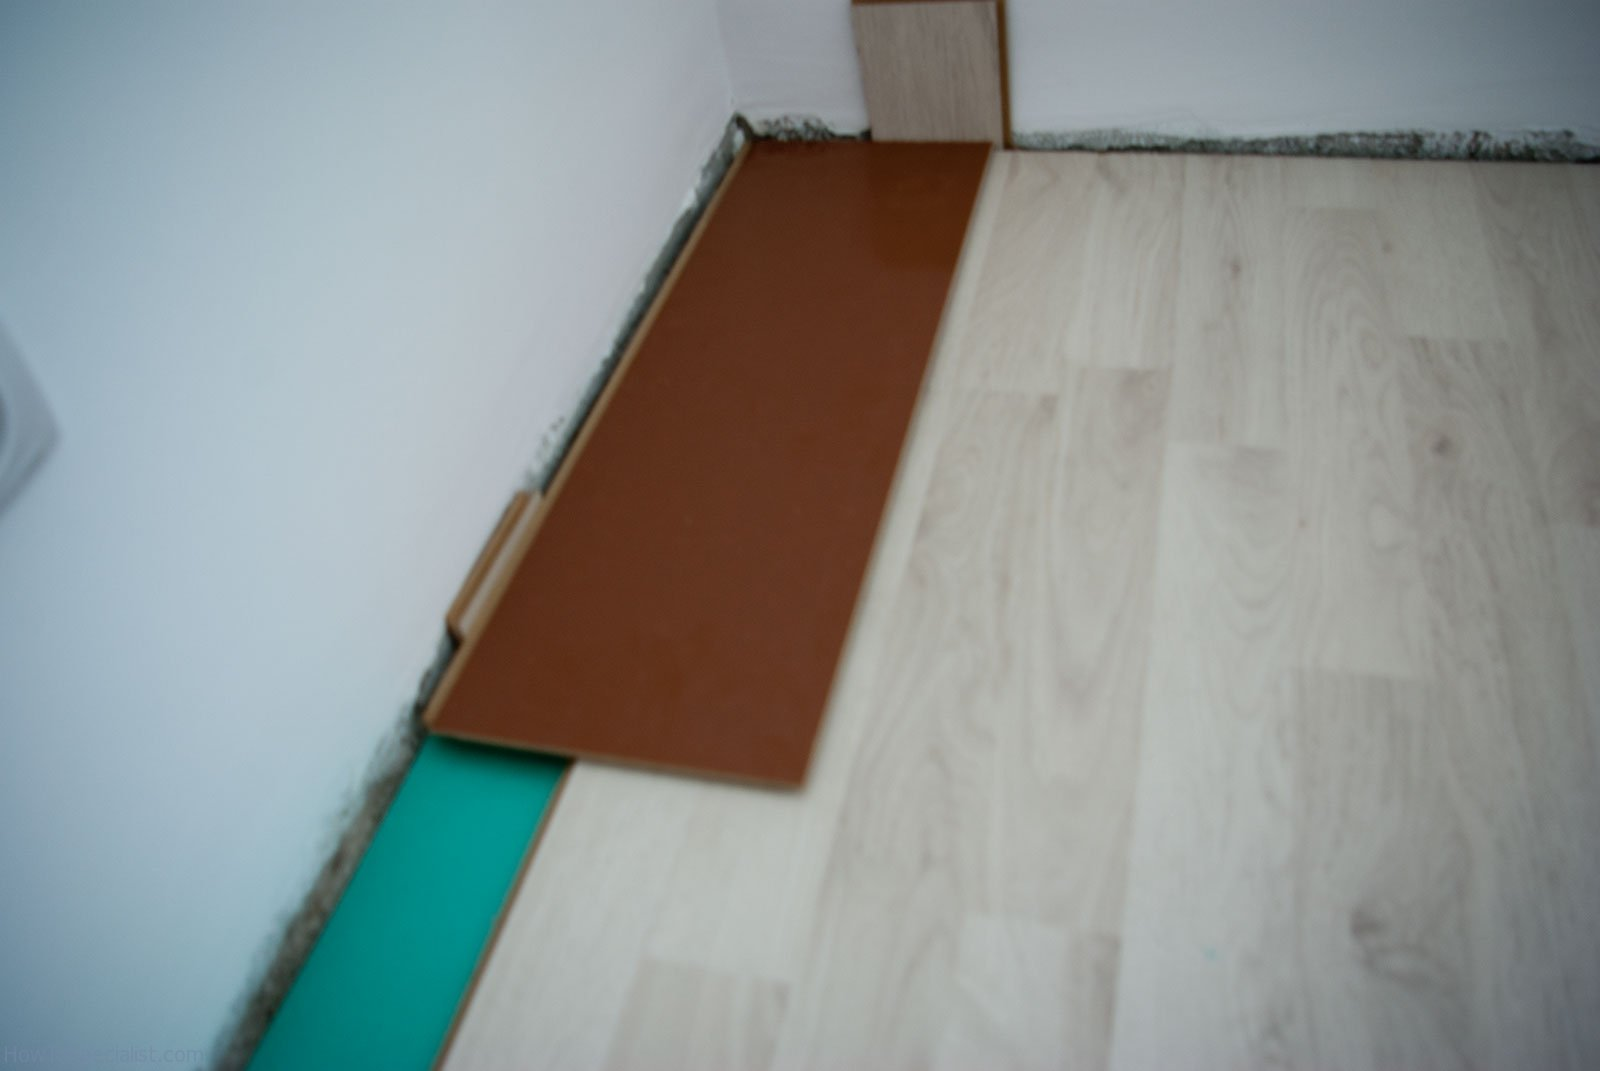 How to lay laminate flooring on concrete howtospecialist for Laying laminate flooring